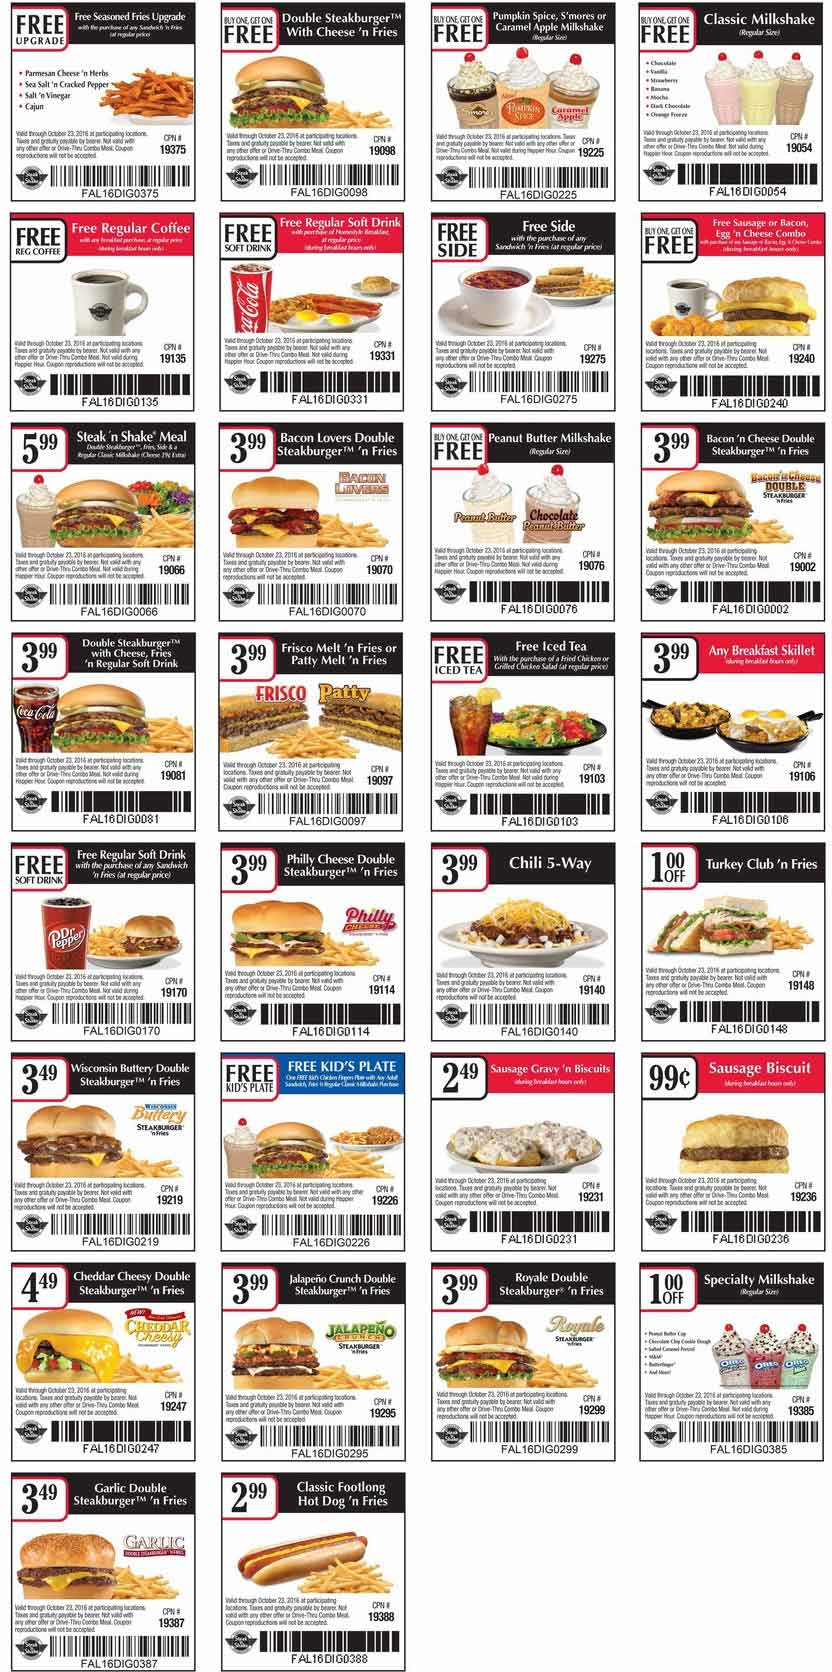 Steak n Shake Coupon May 2018 Second steakburger meal free & more at Steak N Shake